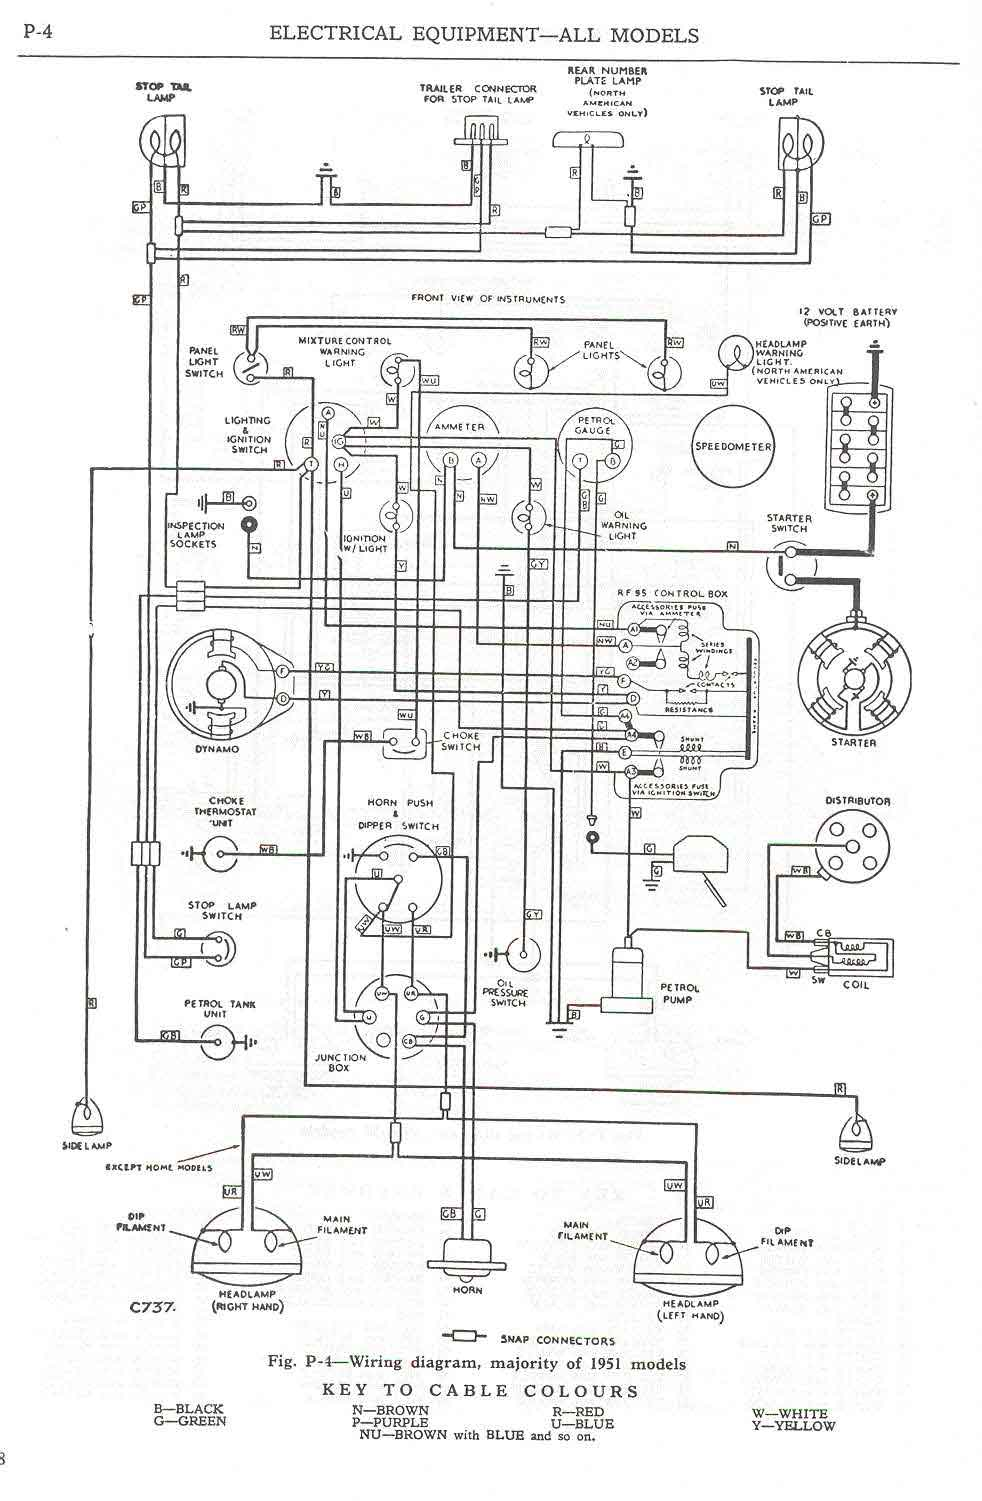 wiring diagram series a land rover wiring image land rover faq repair maintenance series electrical on wiring diagram series 2a land rover